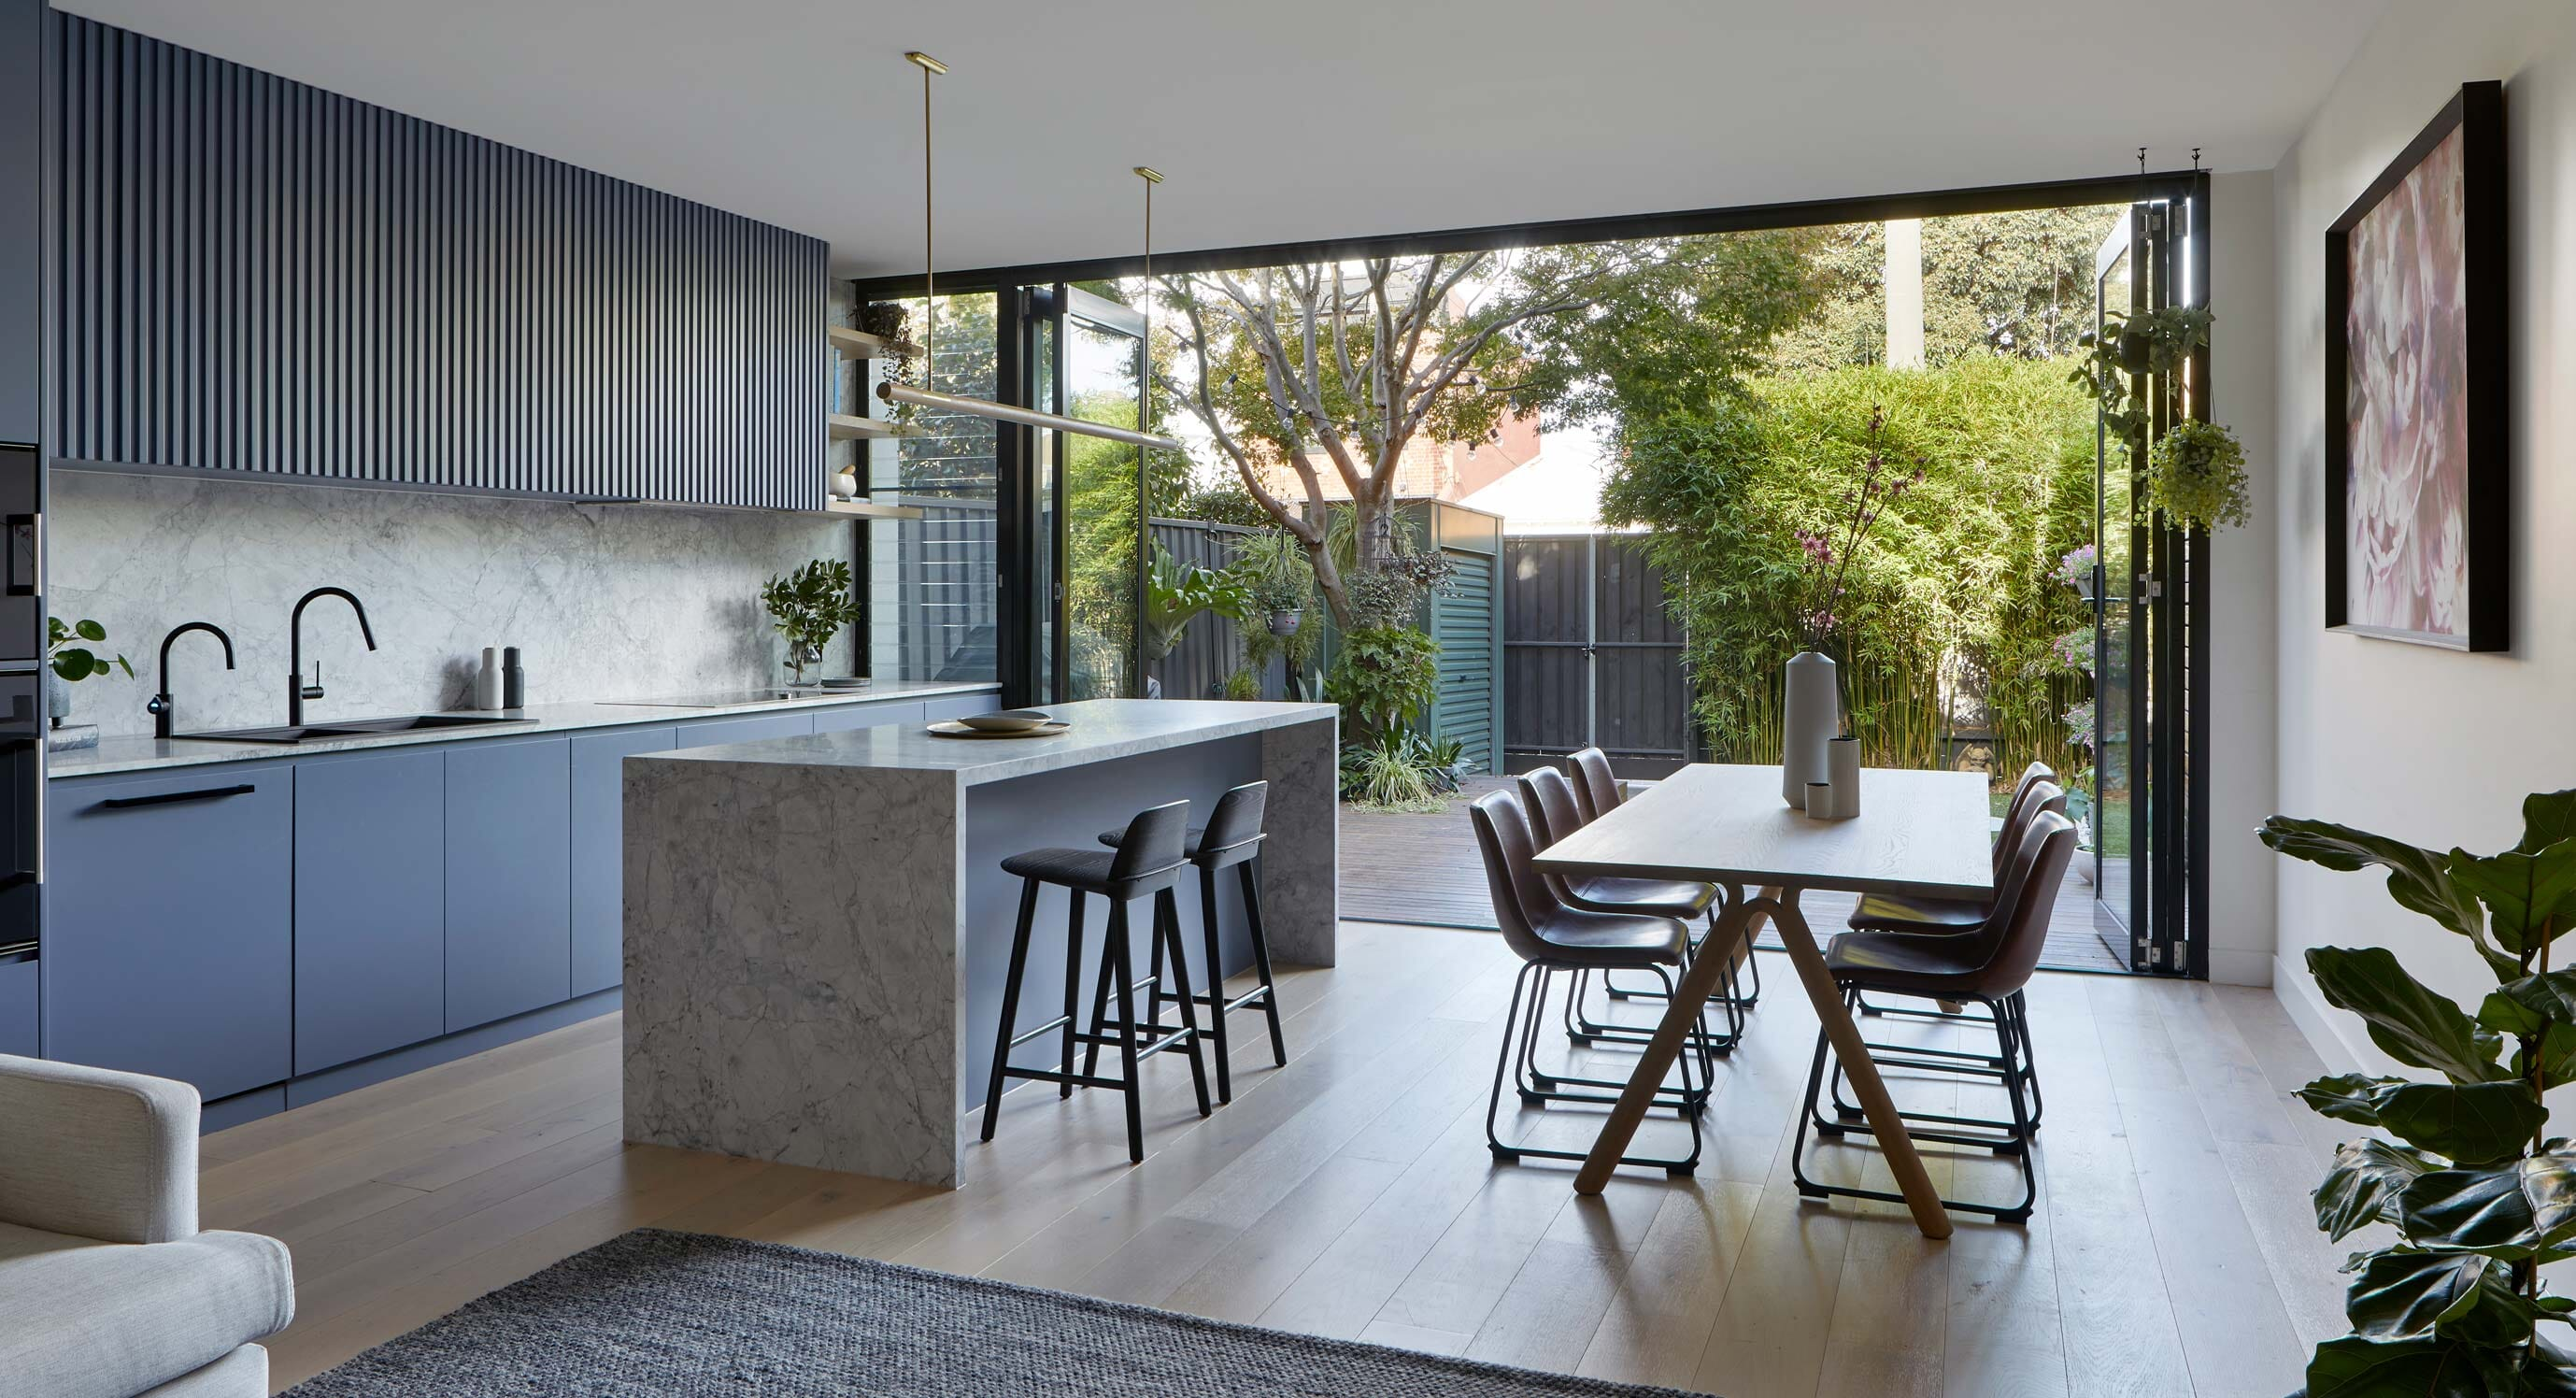 House 184 Is A Bright Update To A Melbourne Worker's Cottage